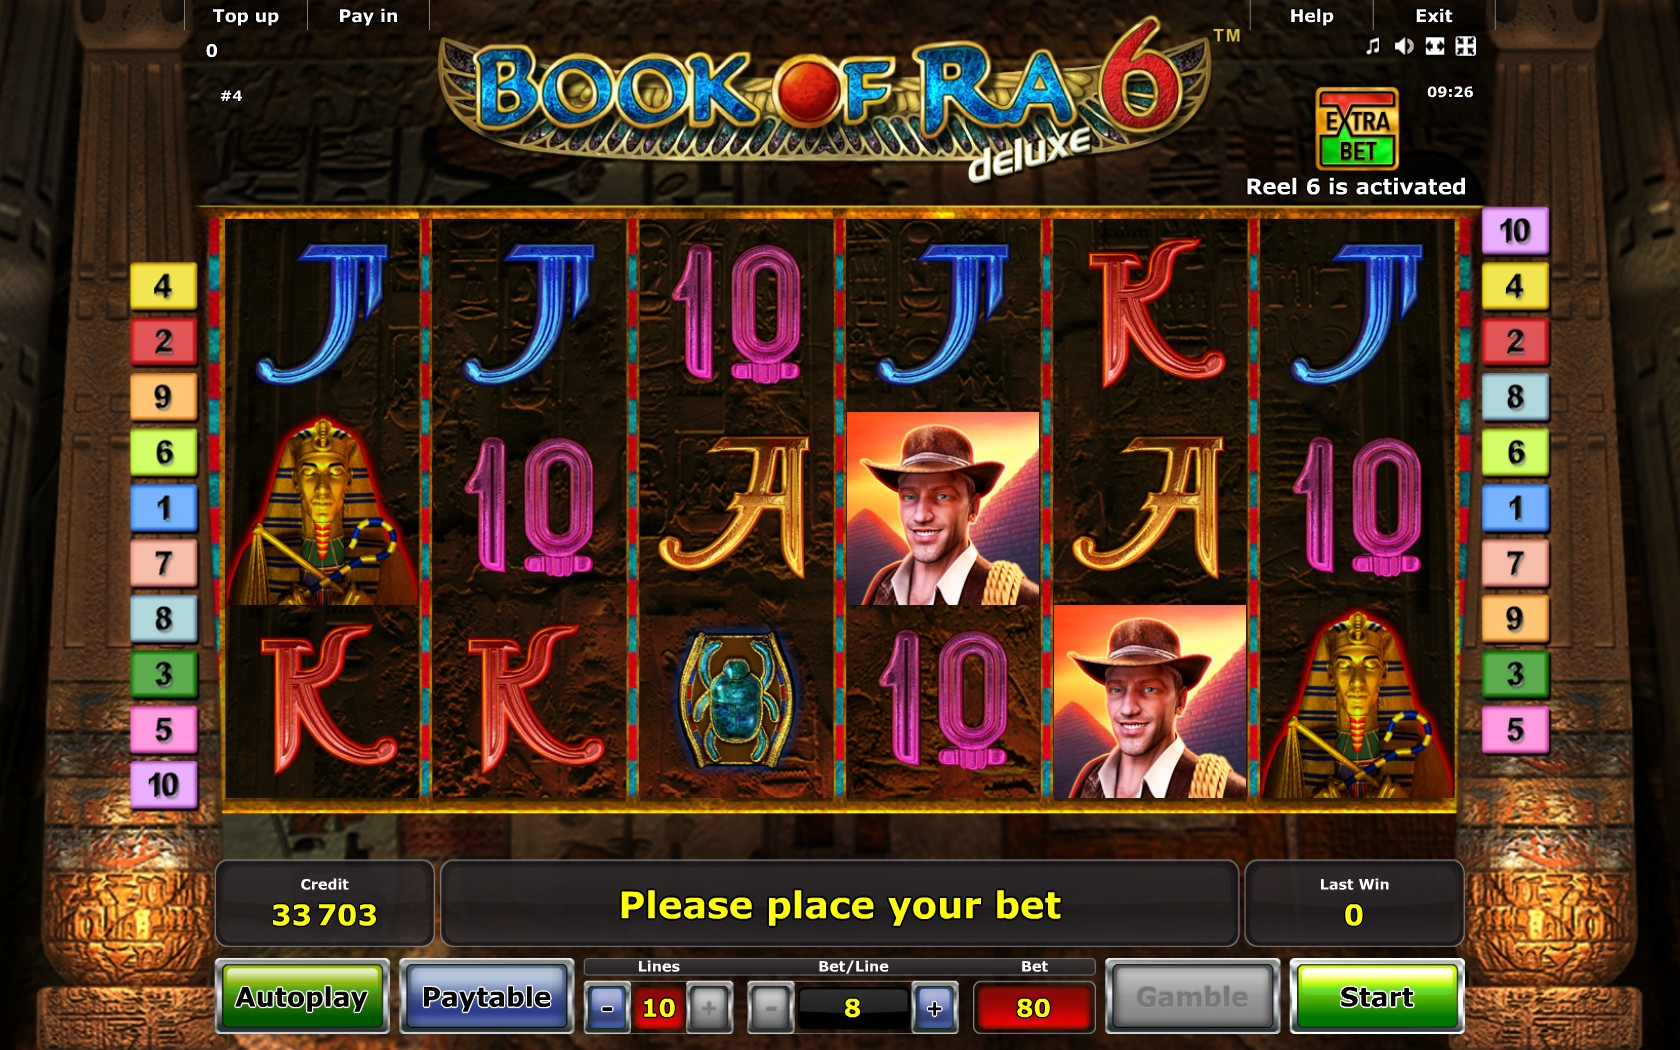 gambling casino online bonus casino book of ra online